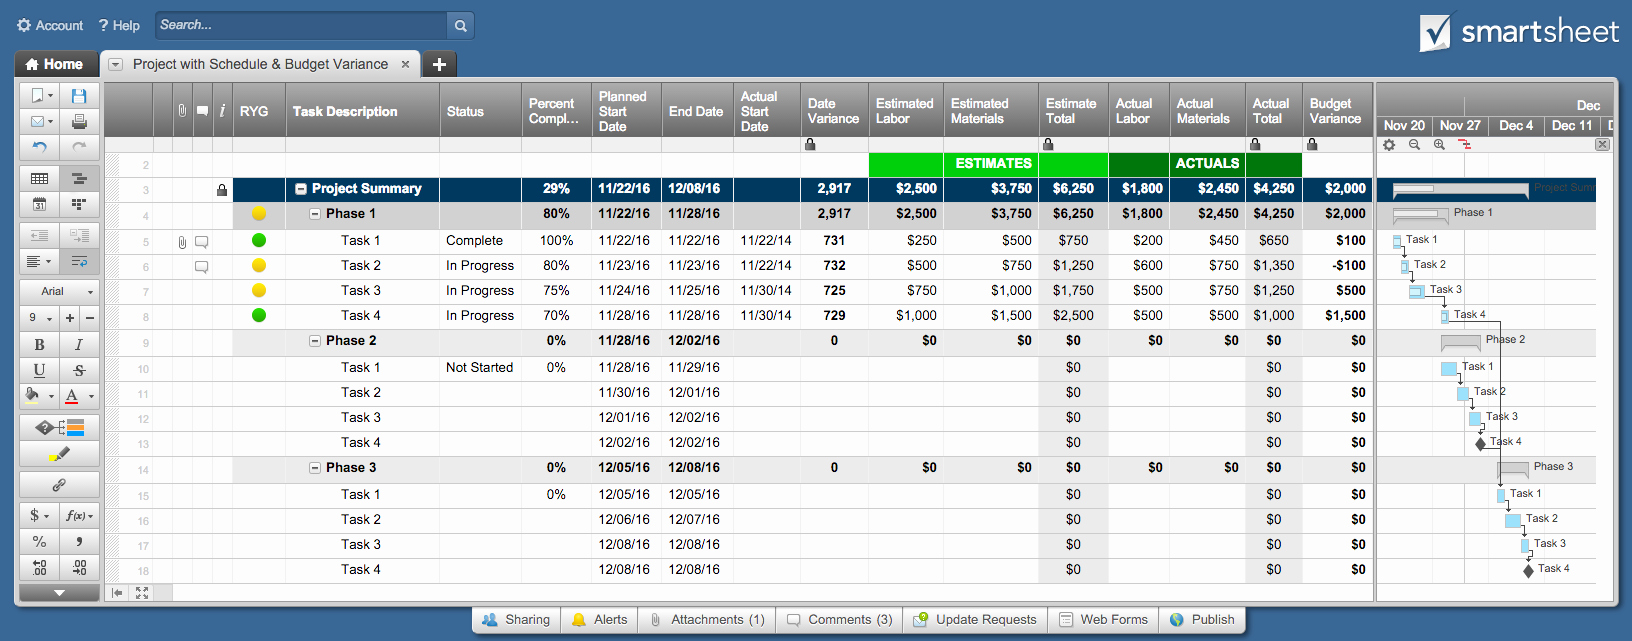 Project Management Spreadsheet Template Excel Inspirational Free Excel Project Management Templates